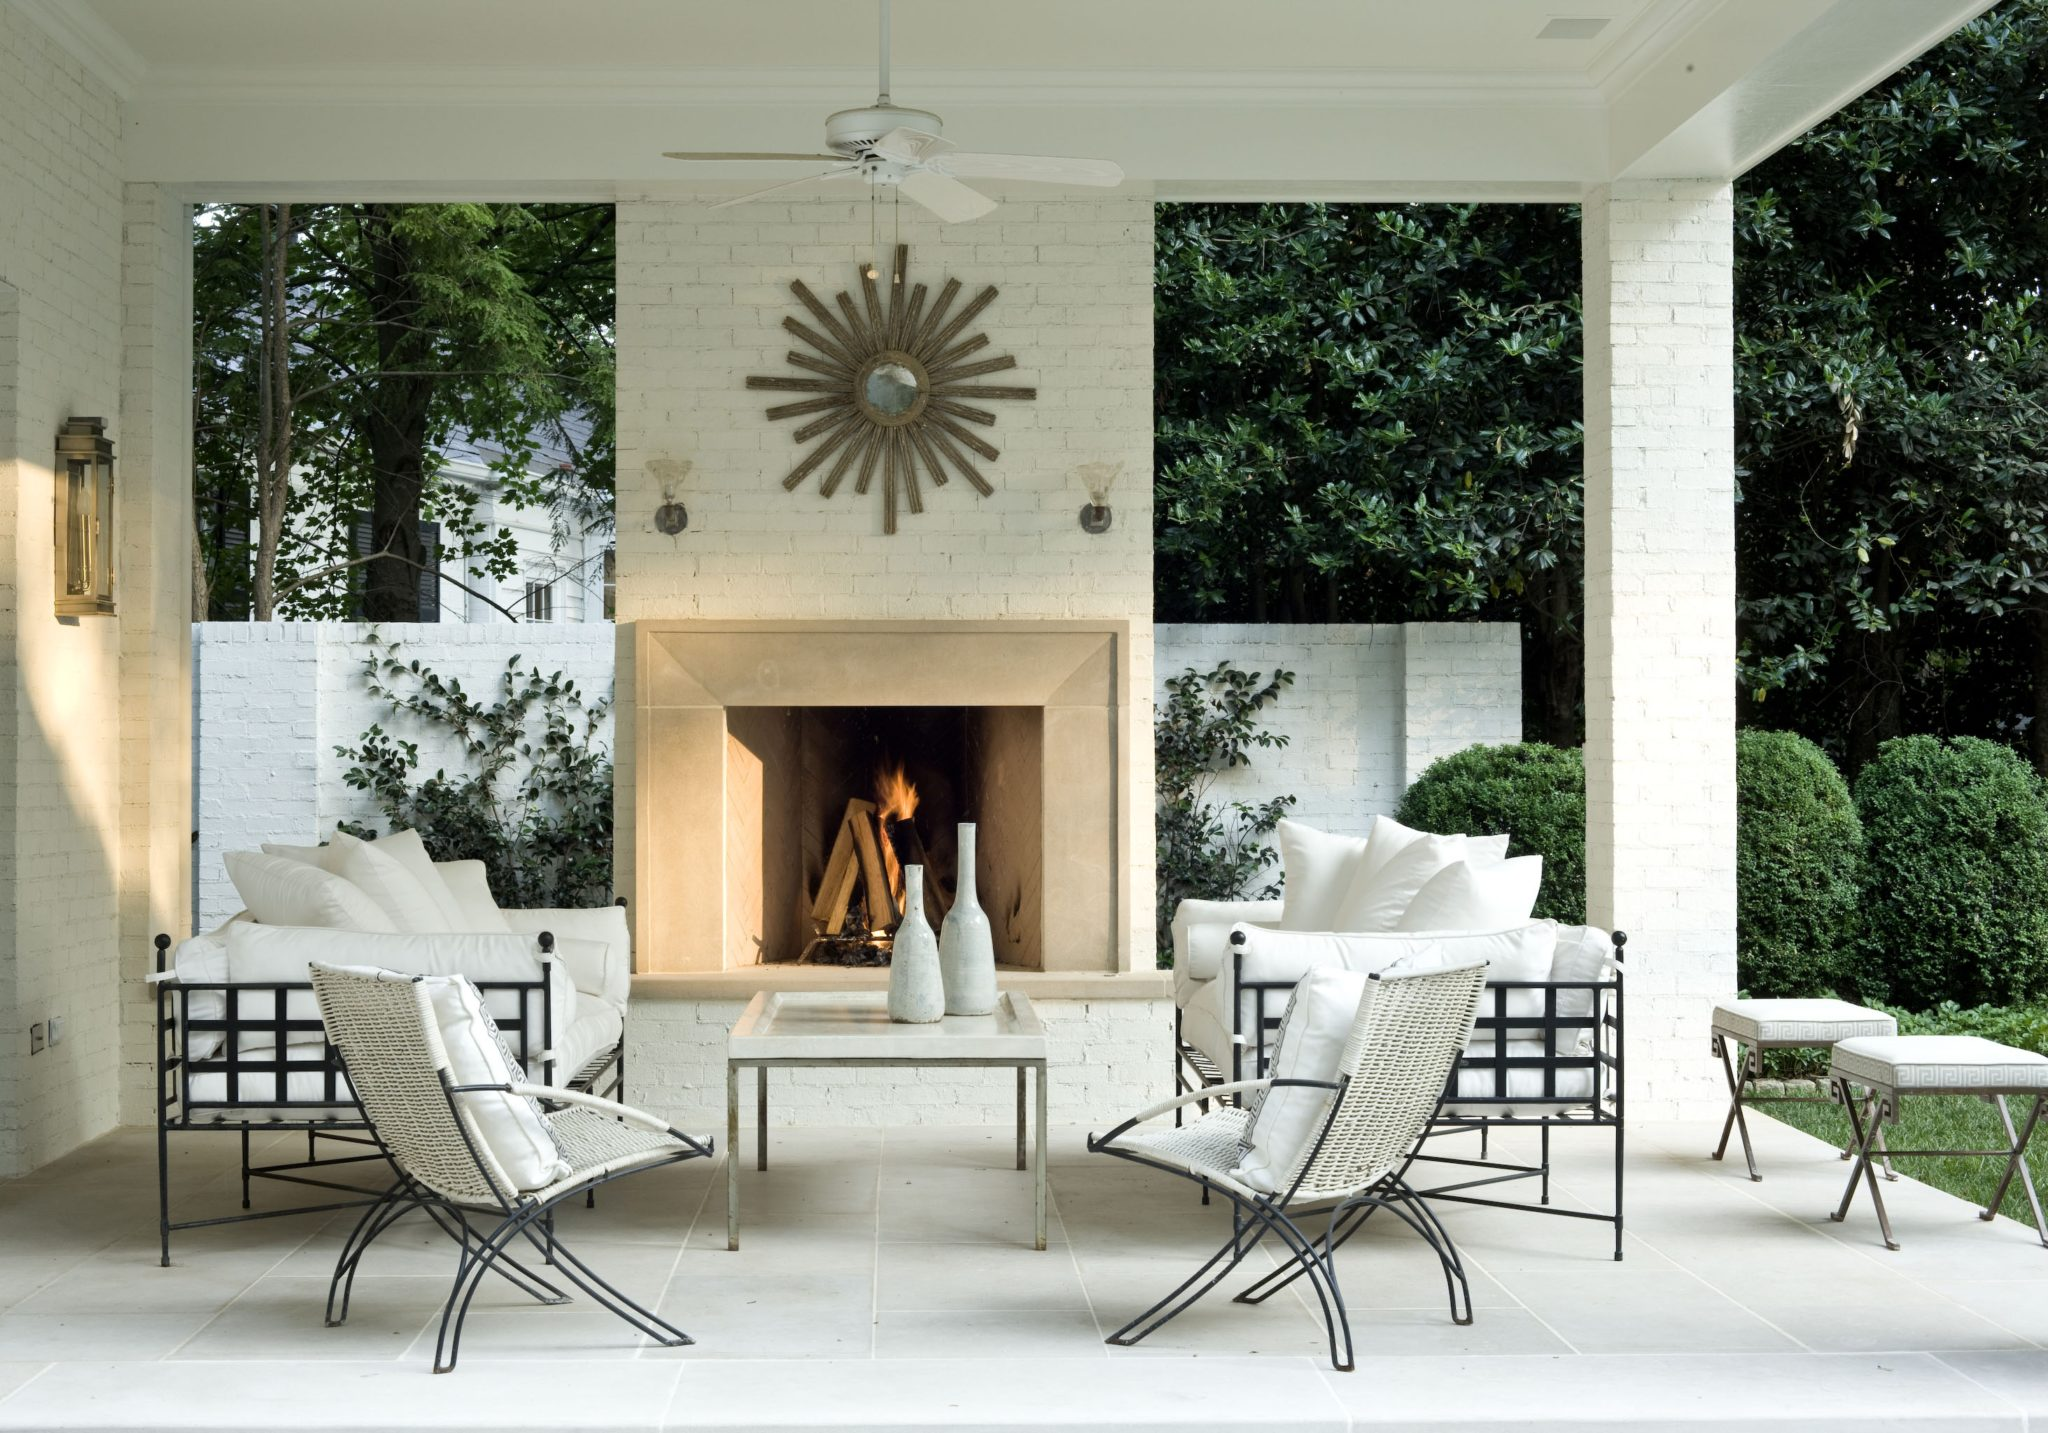 At Home patio with outdoor fireplace by Suzanne Kasler Interiors